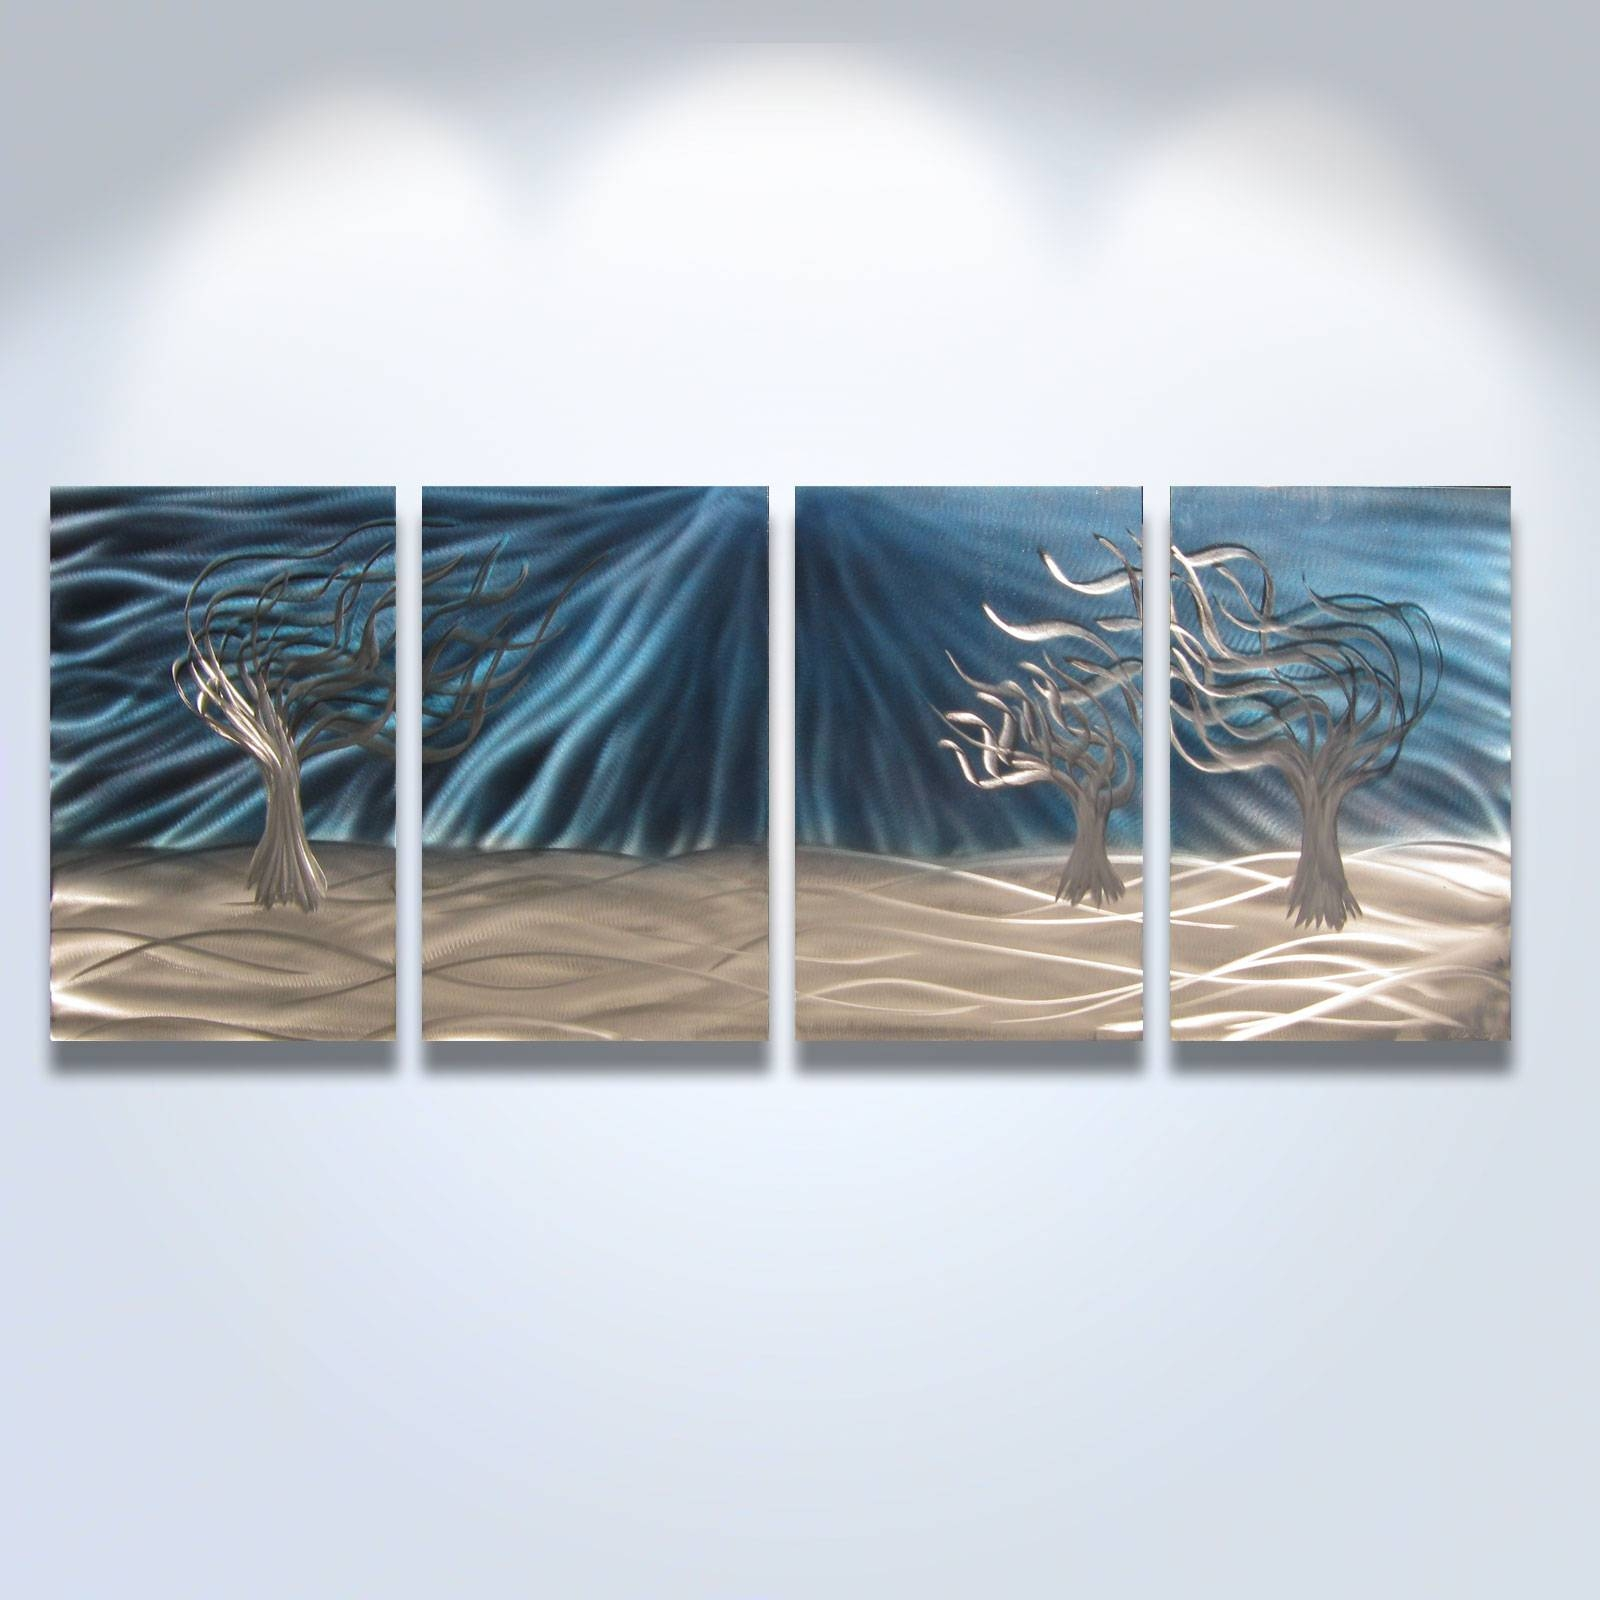 Nice Design Blue Metal Wall Art Homey Ideas Ash Carl Hydrodynamic With Regard To Most Current Ash Carl Metal Art (View 17 of 30)